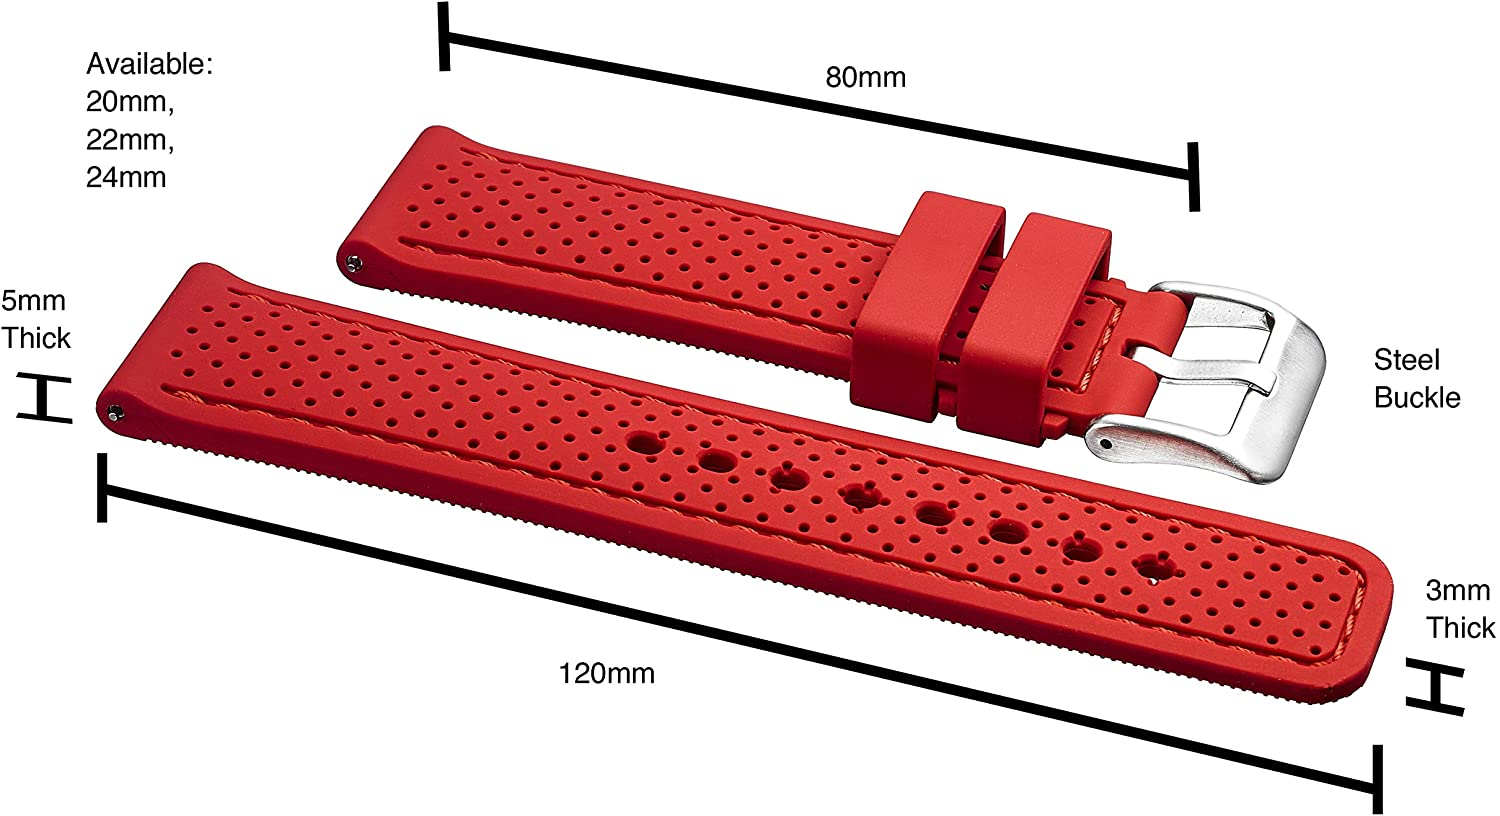 Premium Quality Sporty Silicone Waterproof Watch Band with Quick Release - Soft Rubber Watch Strap - Assroted Colors - 20MM, 22mm and 24mm